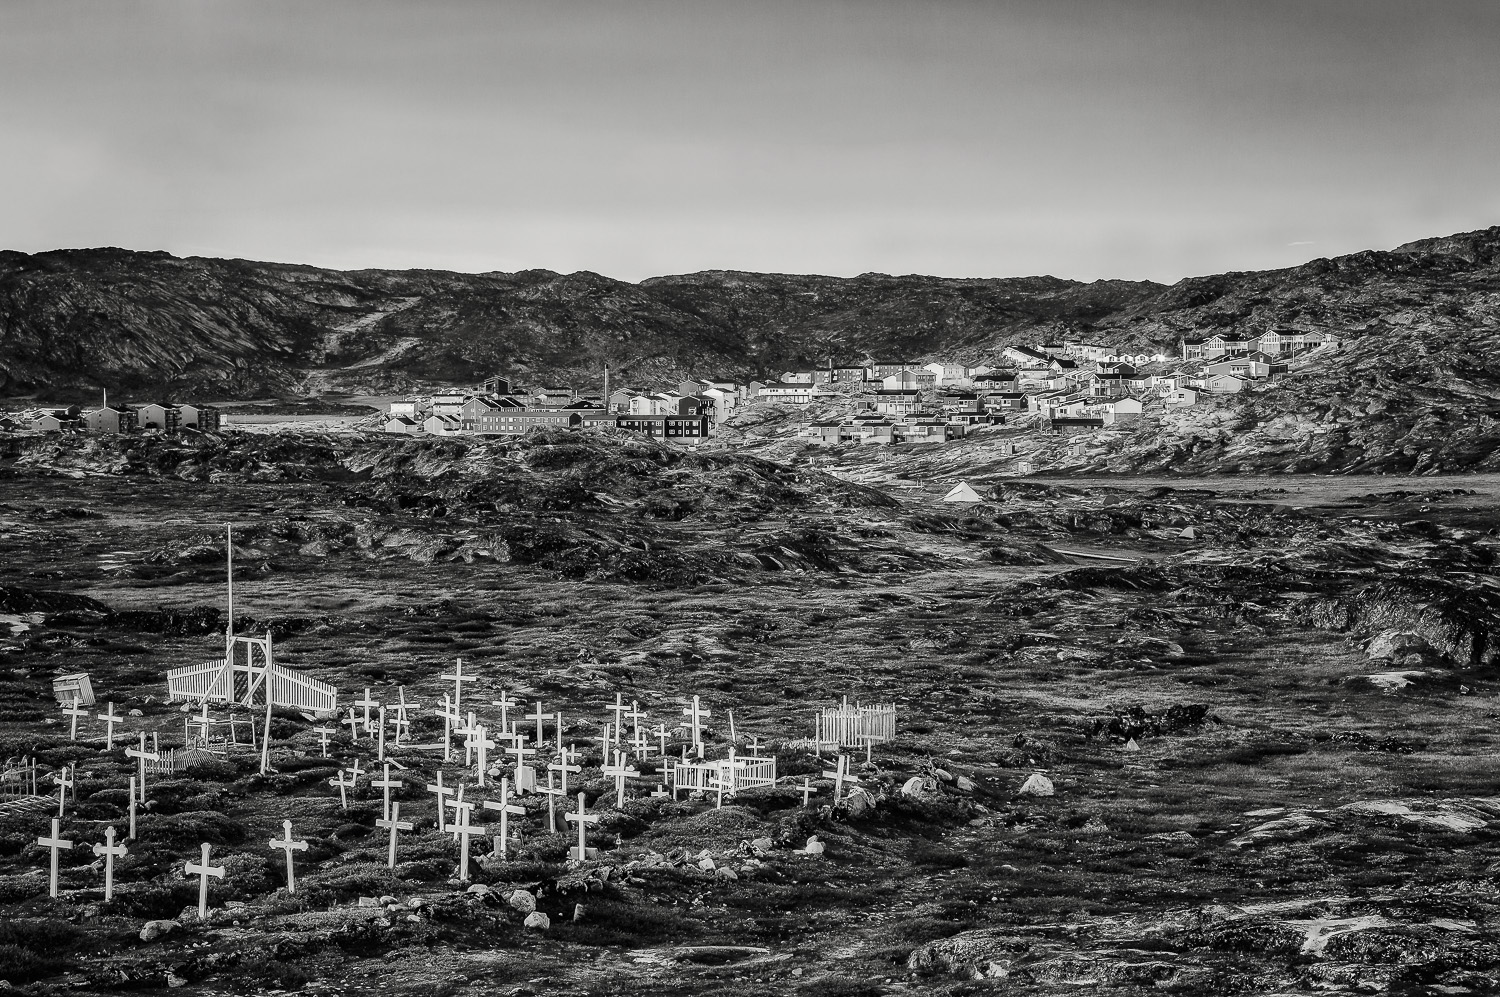 Cemetery and Town Outskirts, Ilulissat, Greenland